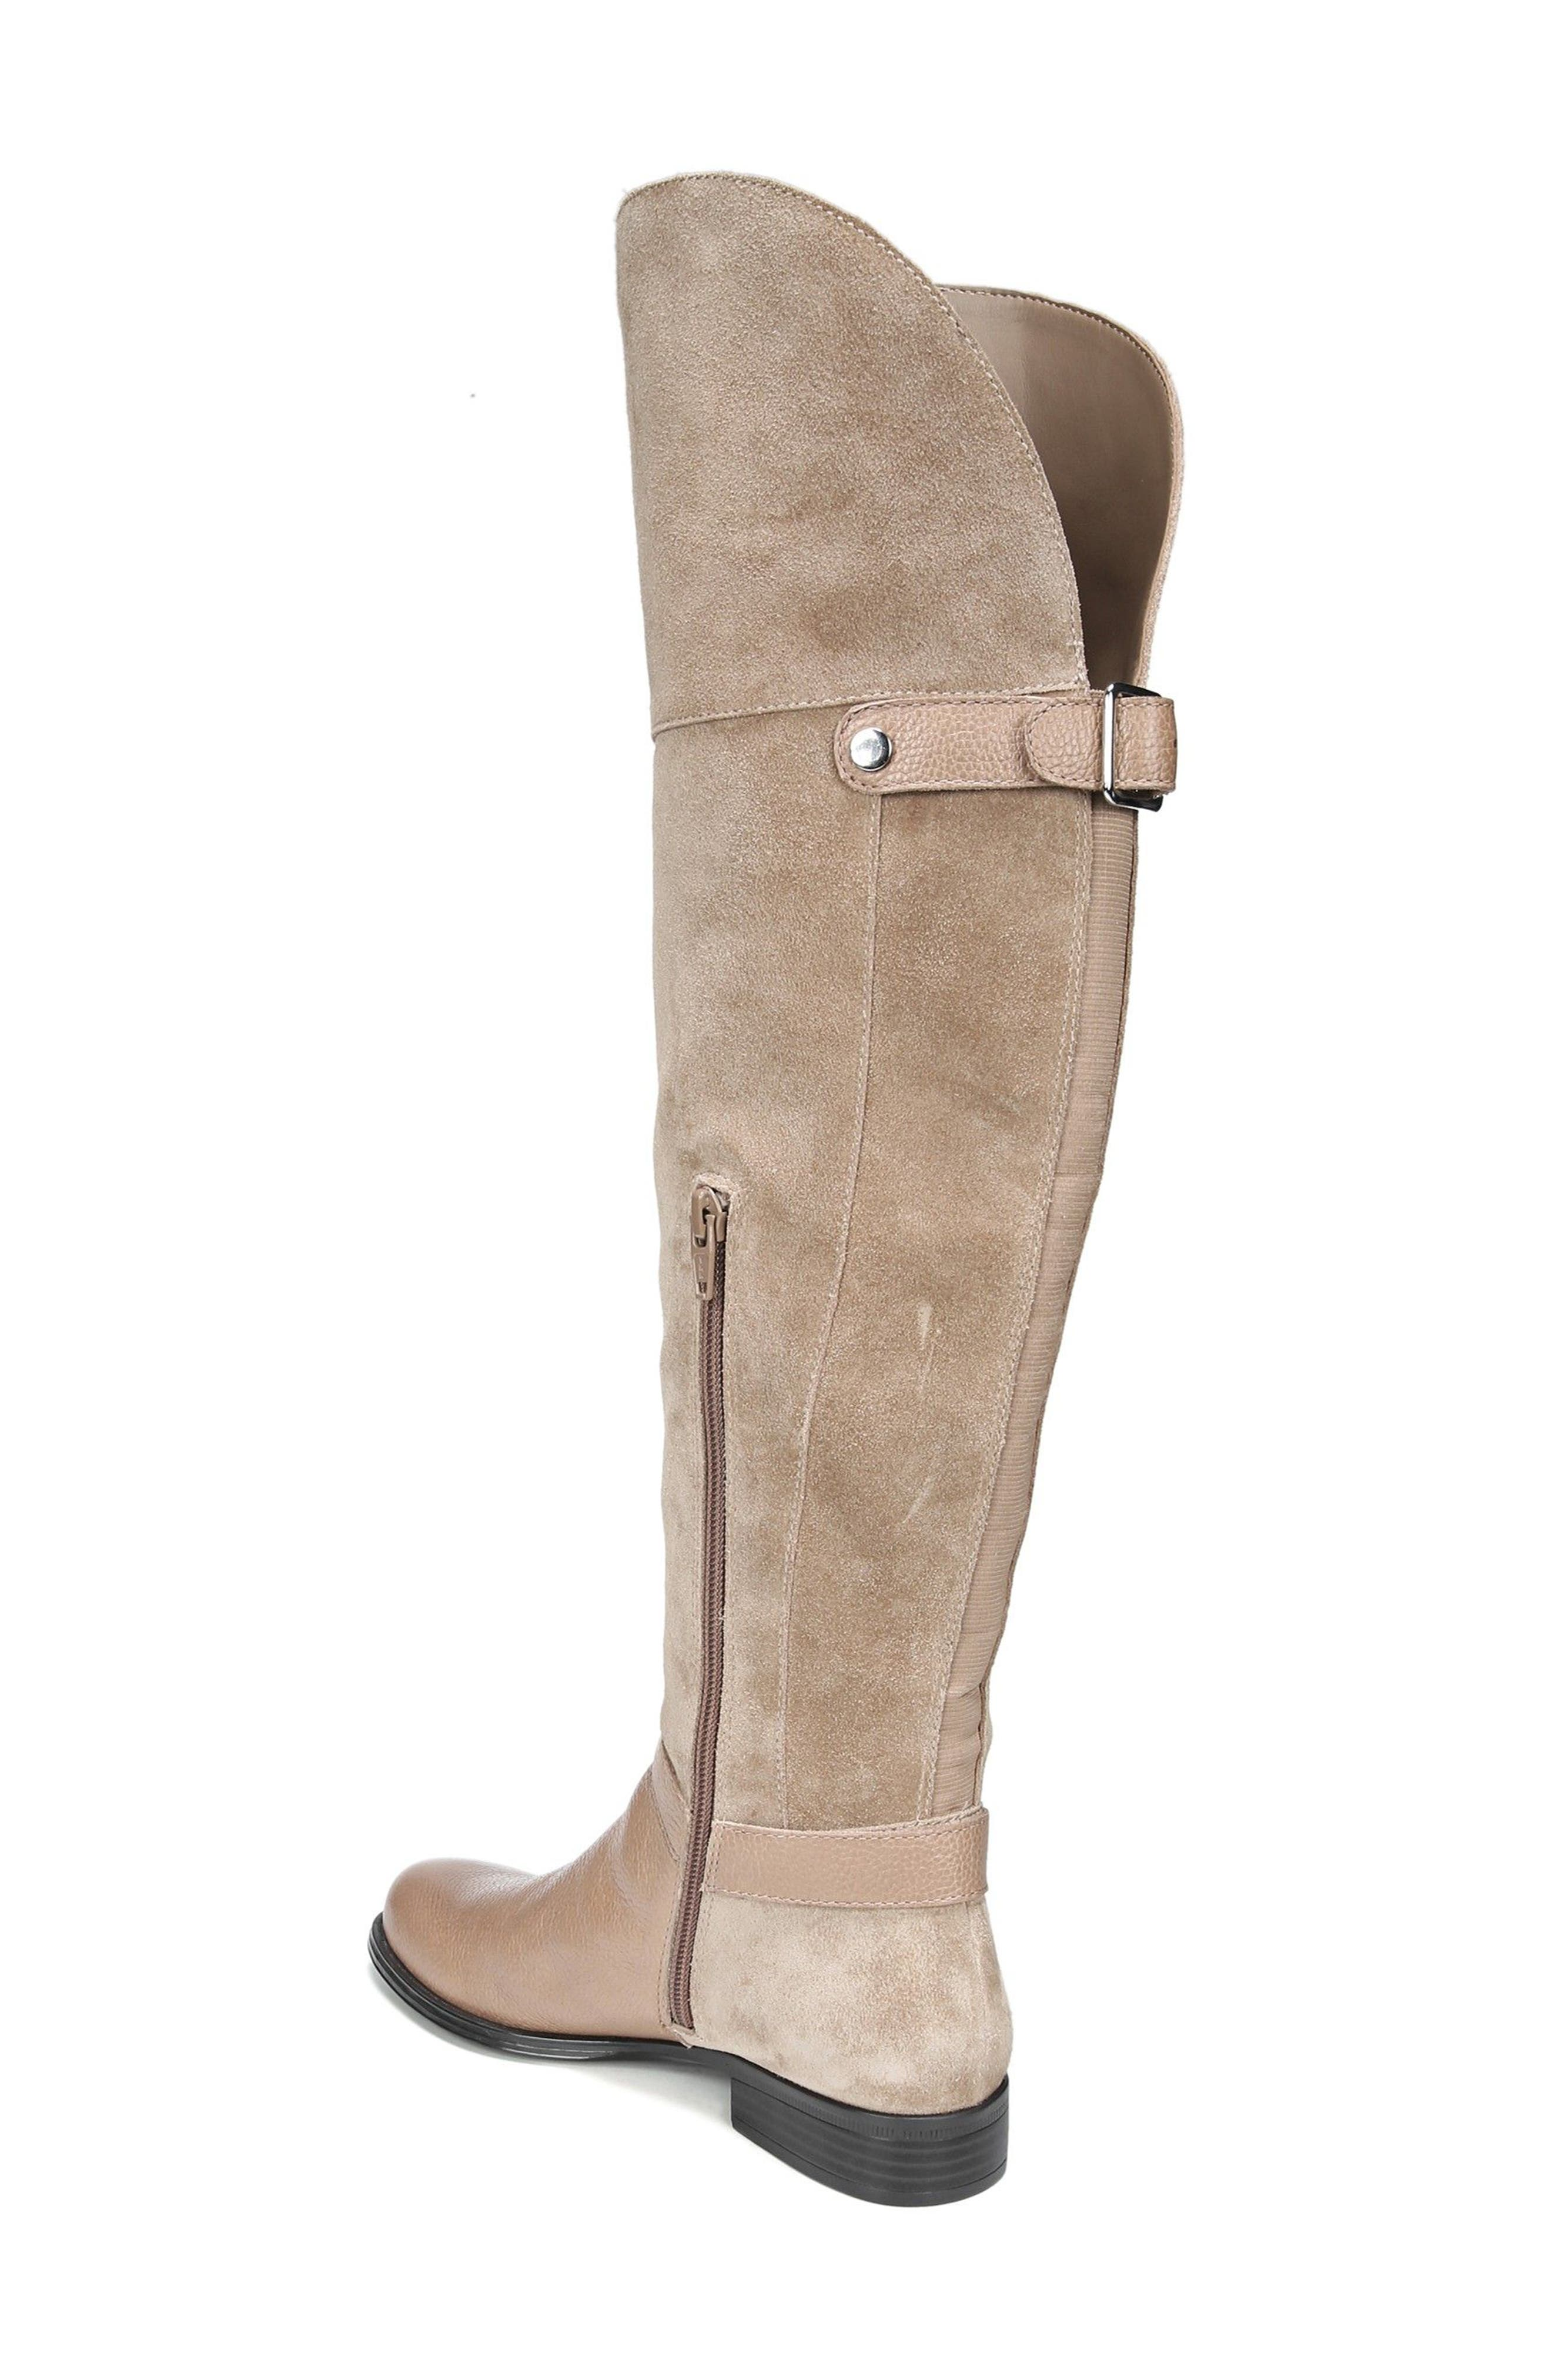 January Over the Knee High Boot,                             Alternate thumbnail 2, color,                             Beige Leather